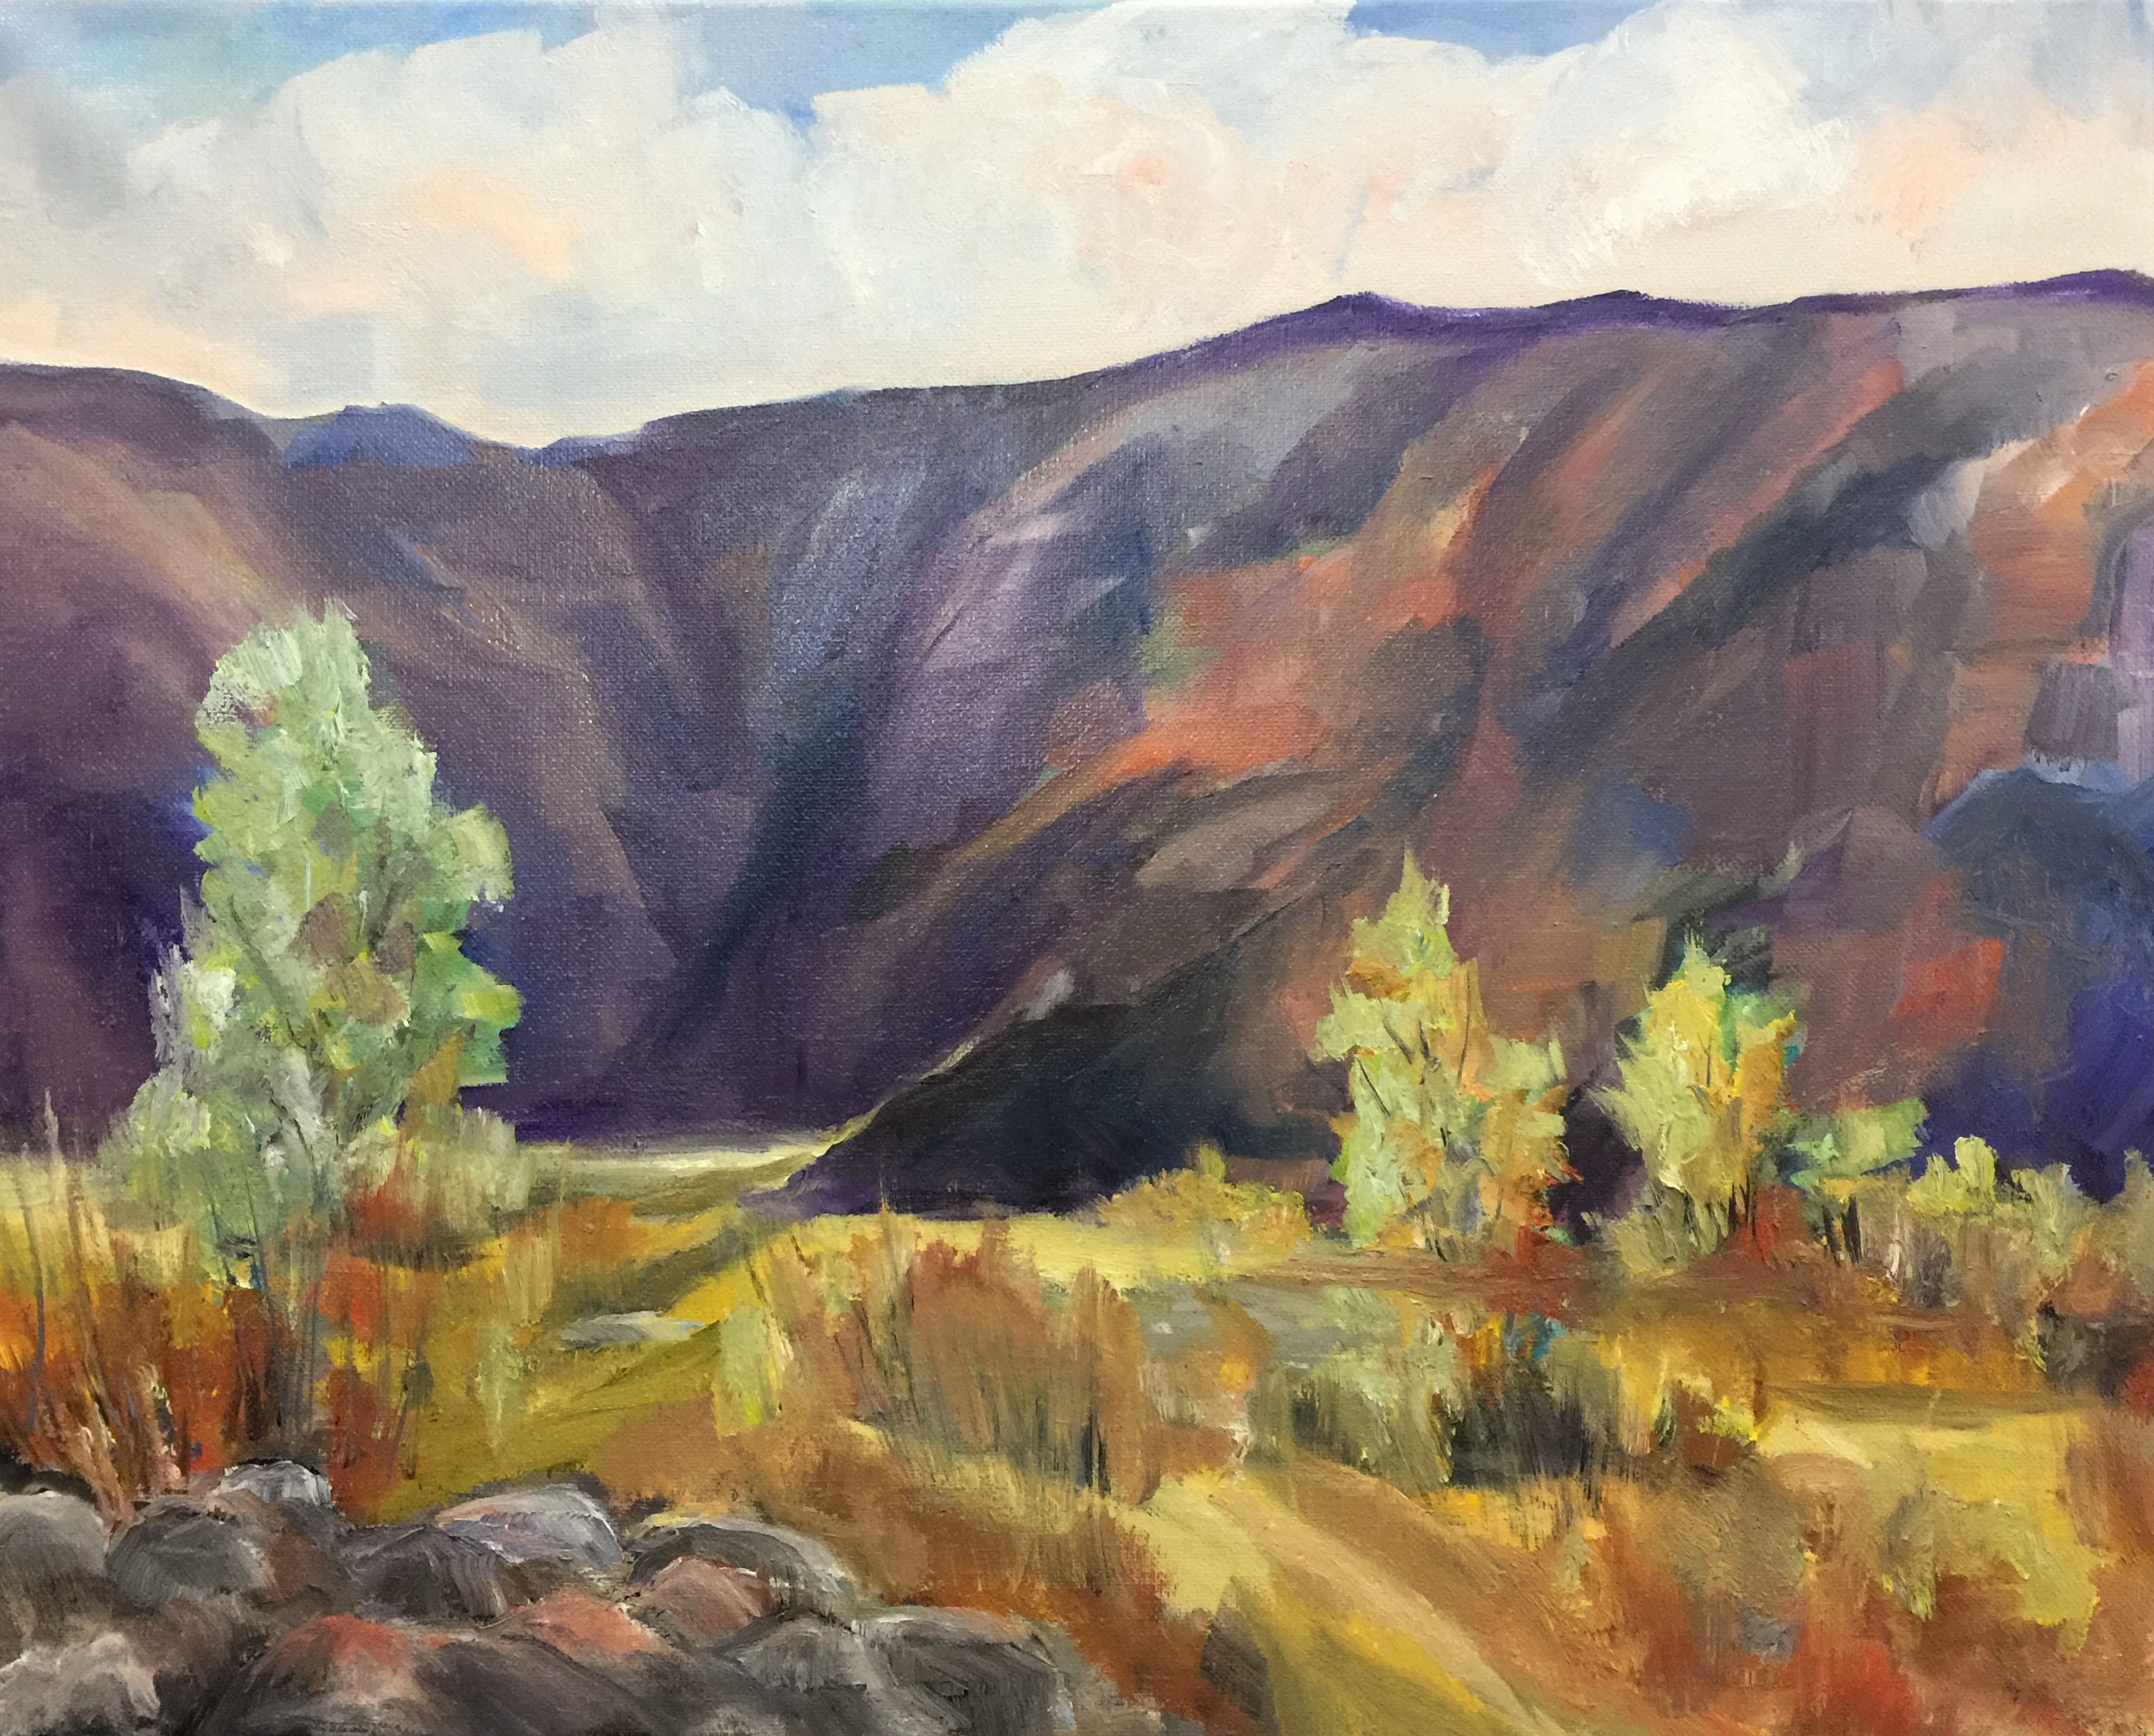 2-1-19  Box Canyon IV  18 x 24